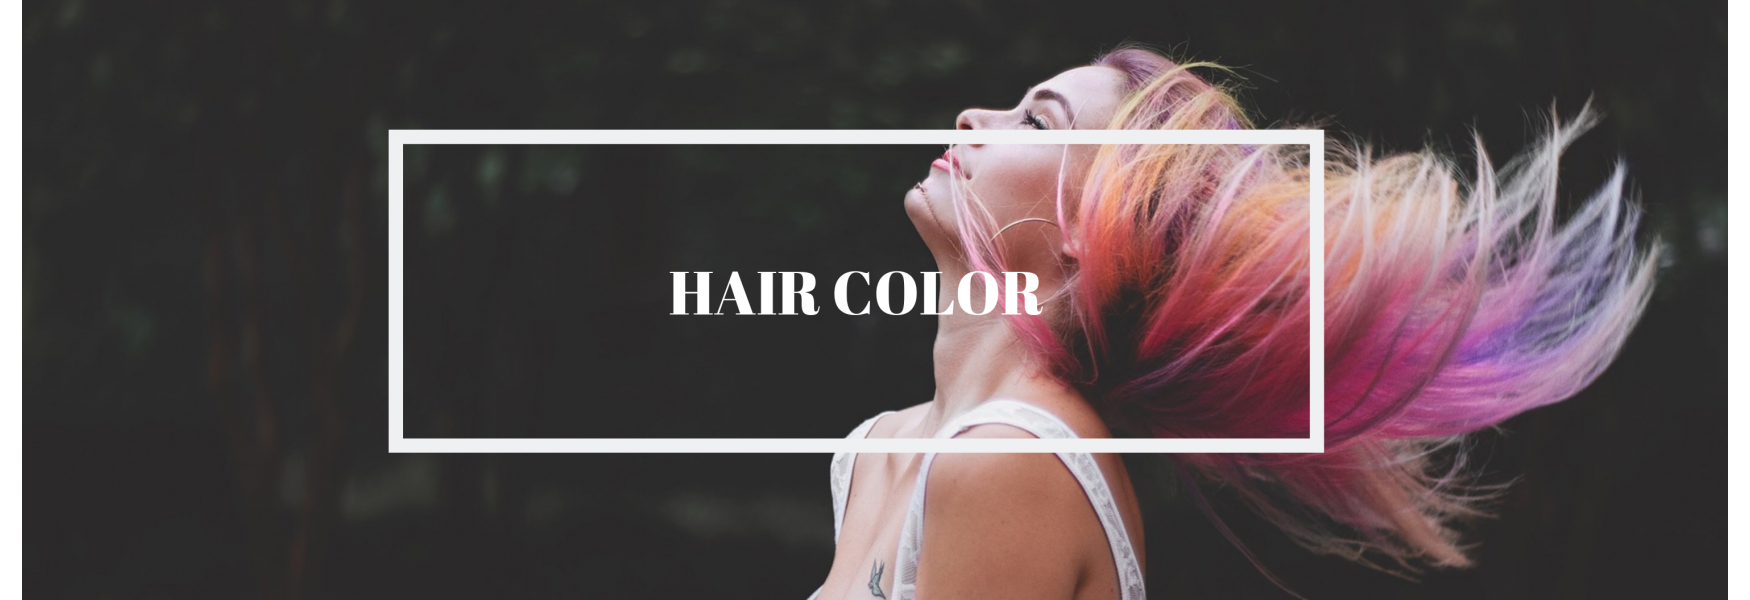 hair color category banner